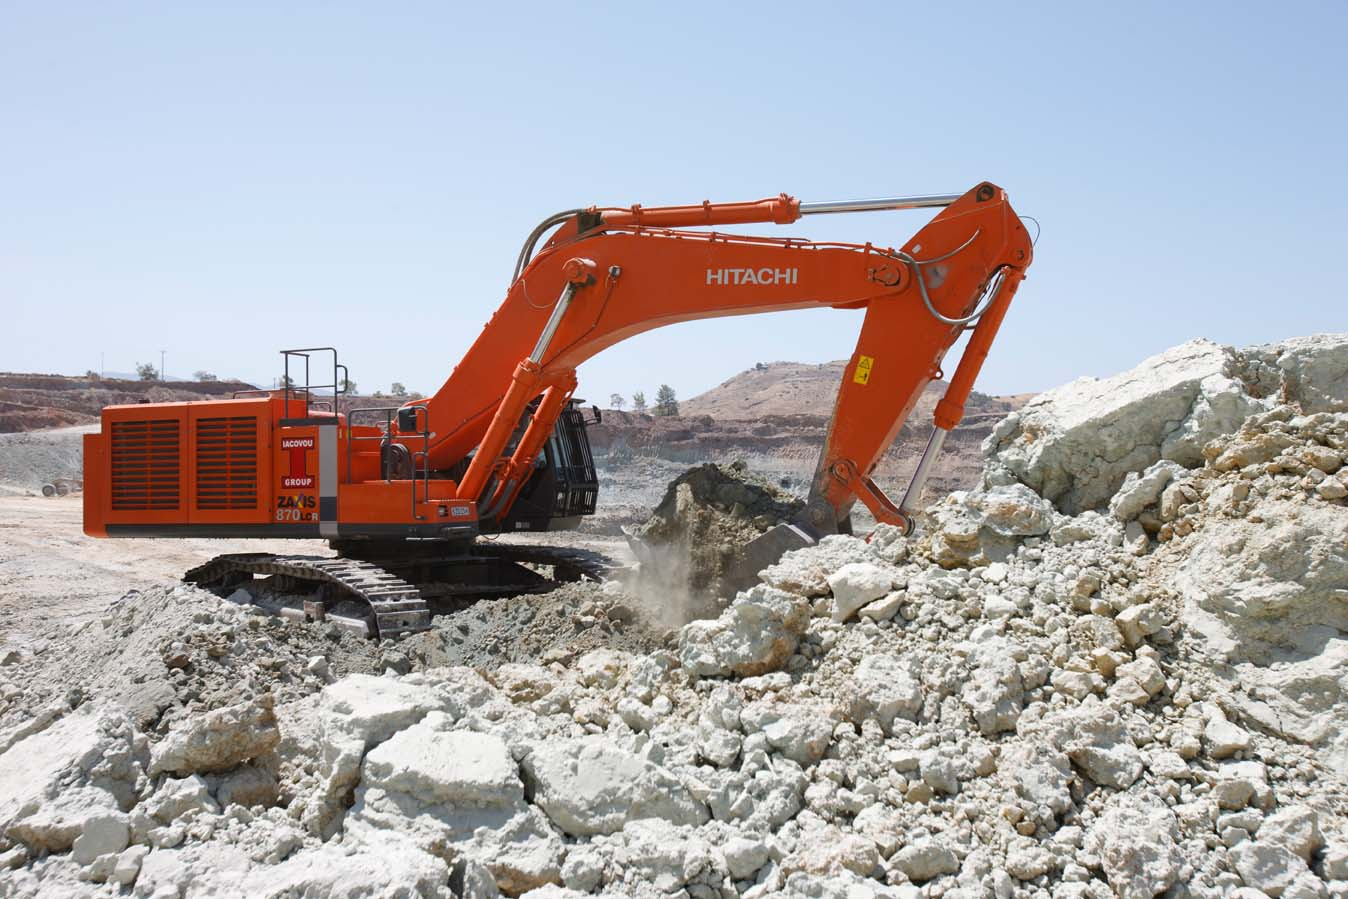 crawler-excavators-zx-870-lcr-3-hitachi(1)